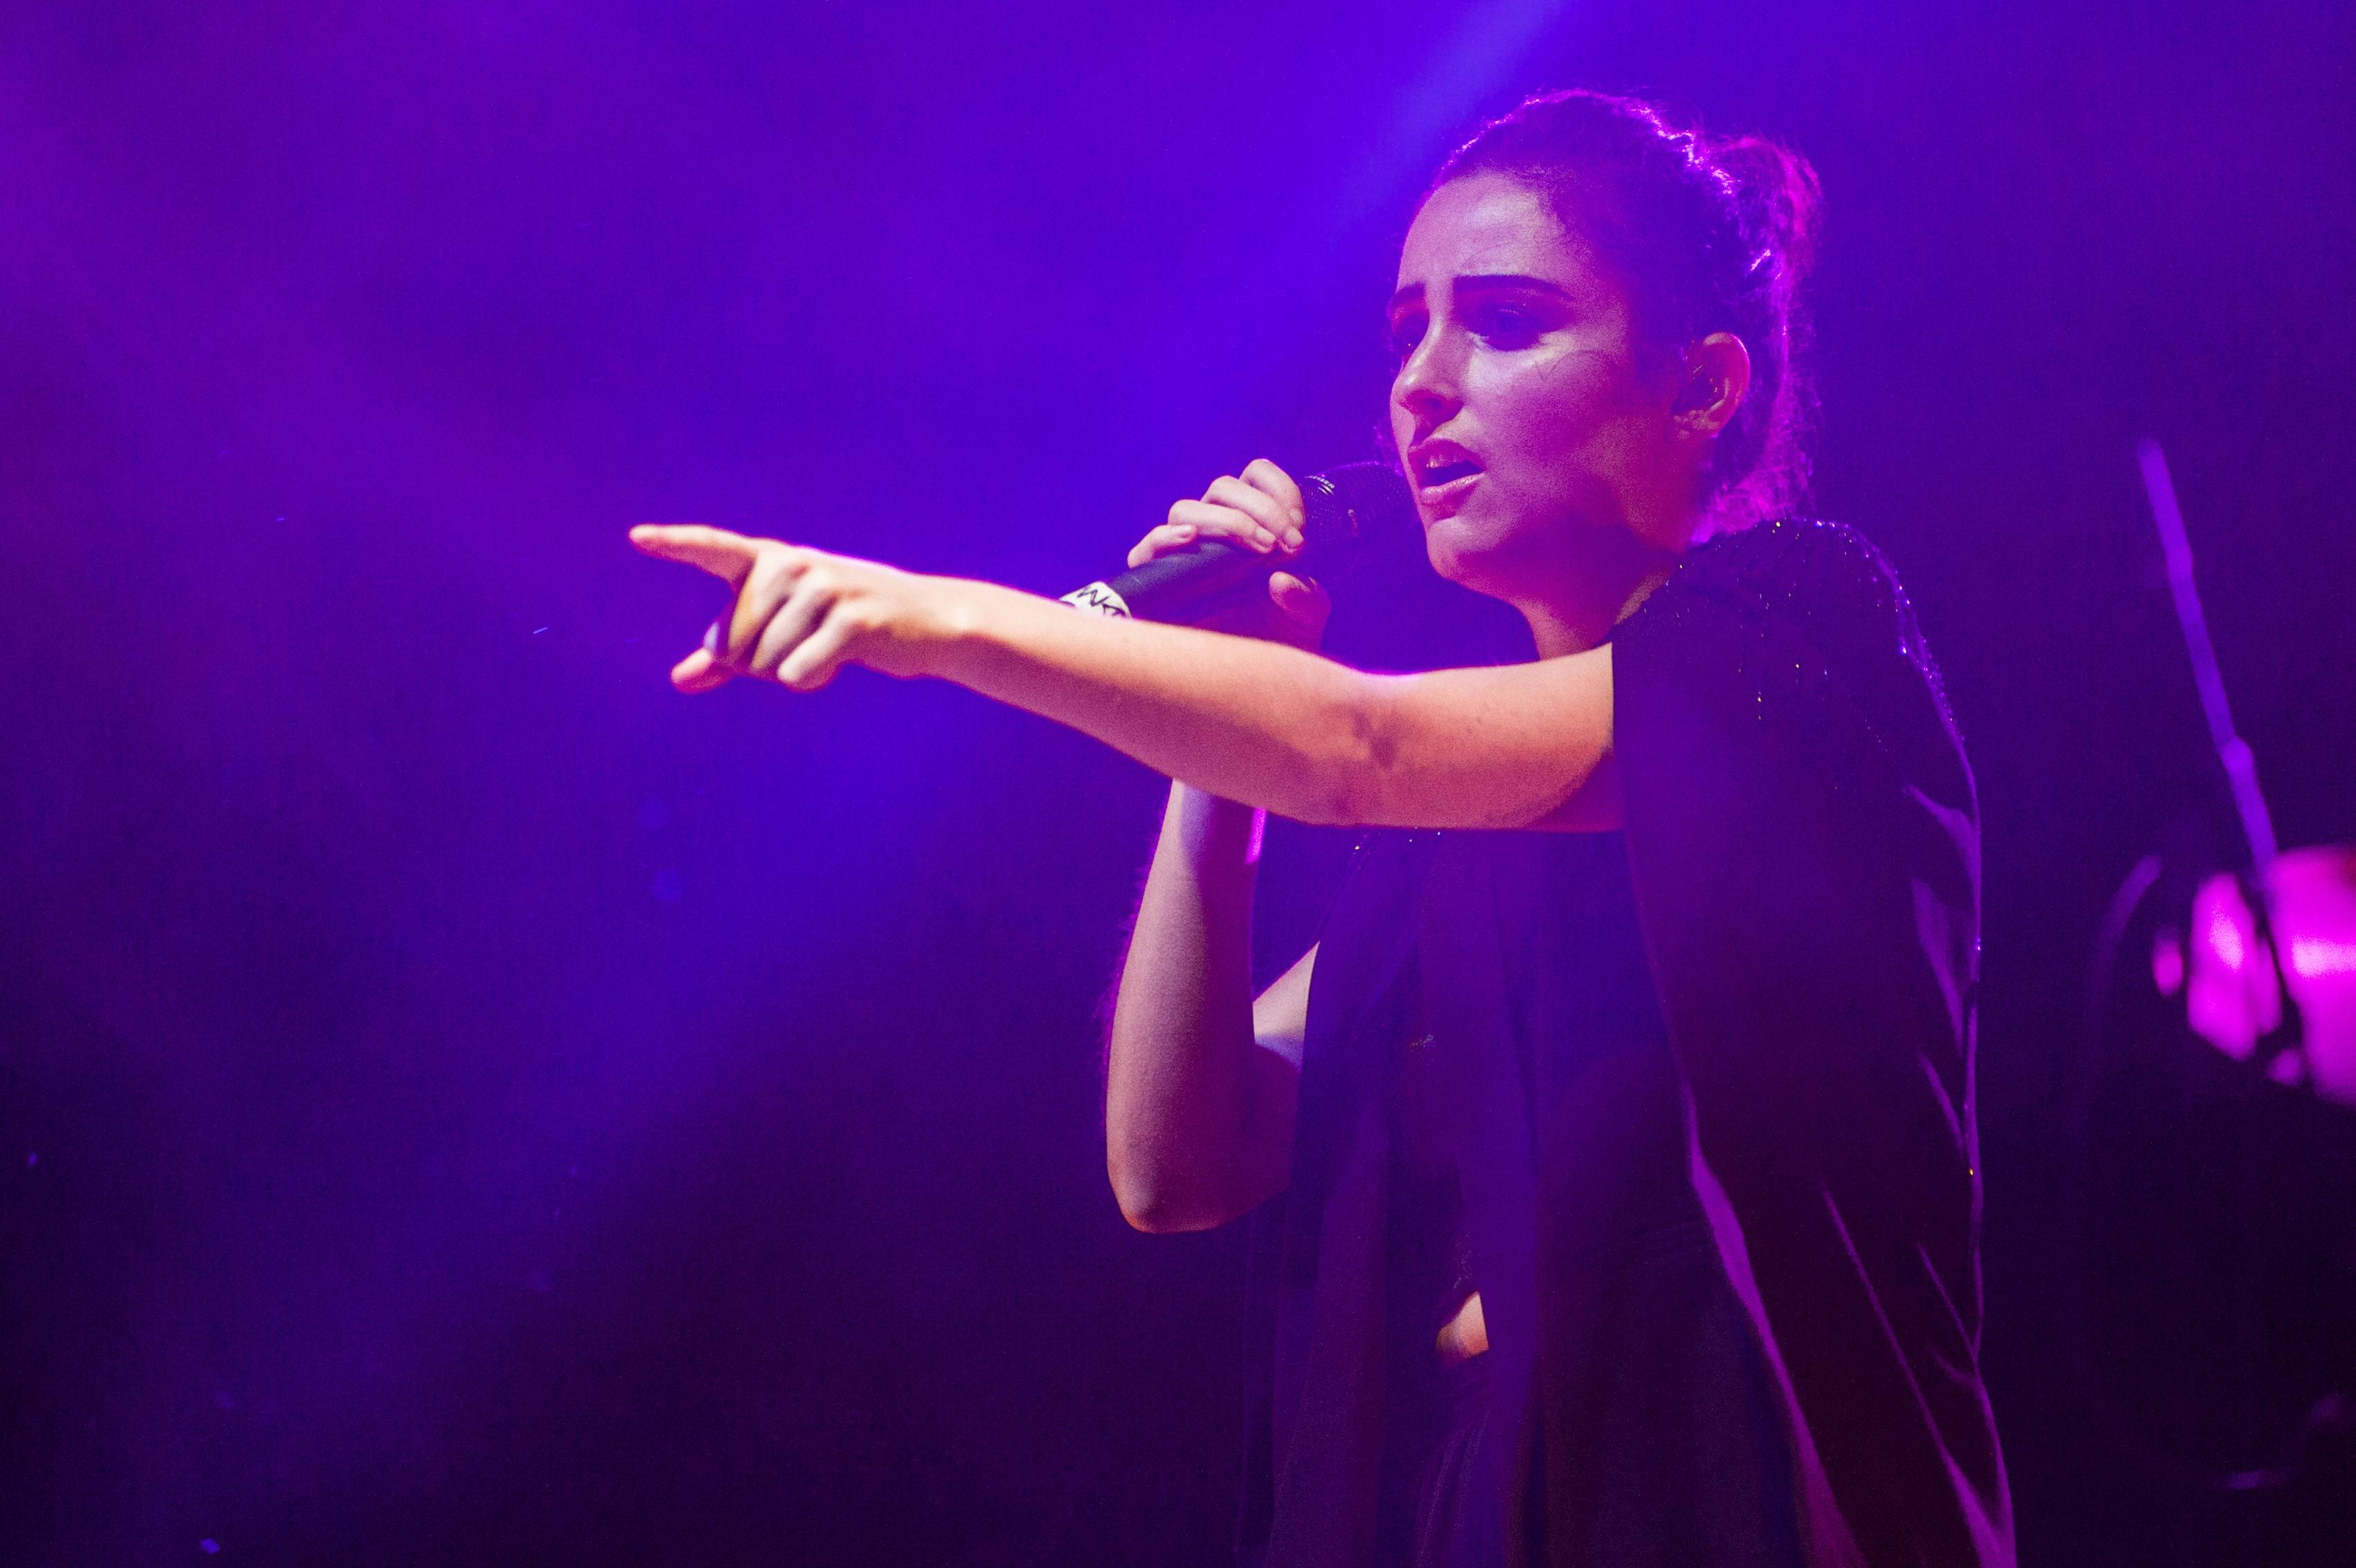 Banks was visibly touched by the support of the crowd by the end of her set.